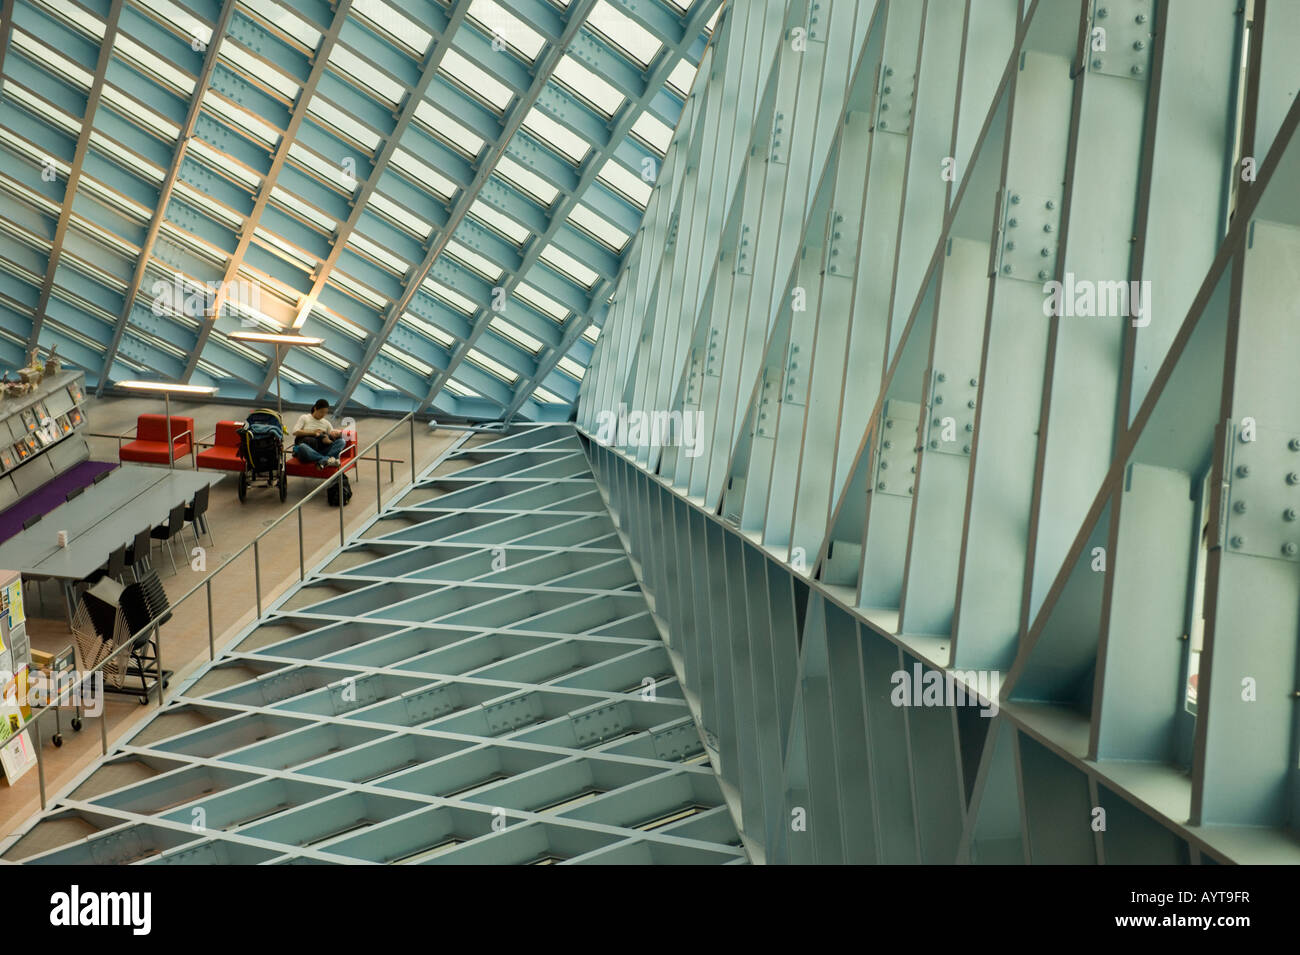 Seattle Central Library Designed by Rem Koolhaas 2004 Seattle Washington - Stock Image